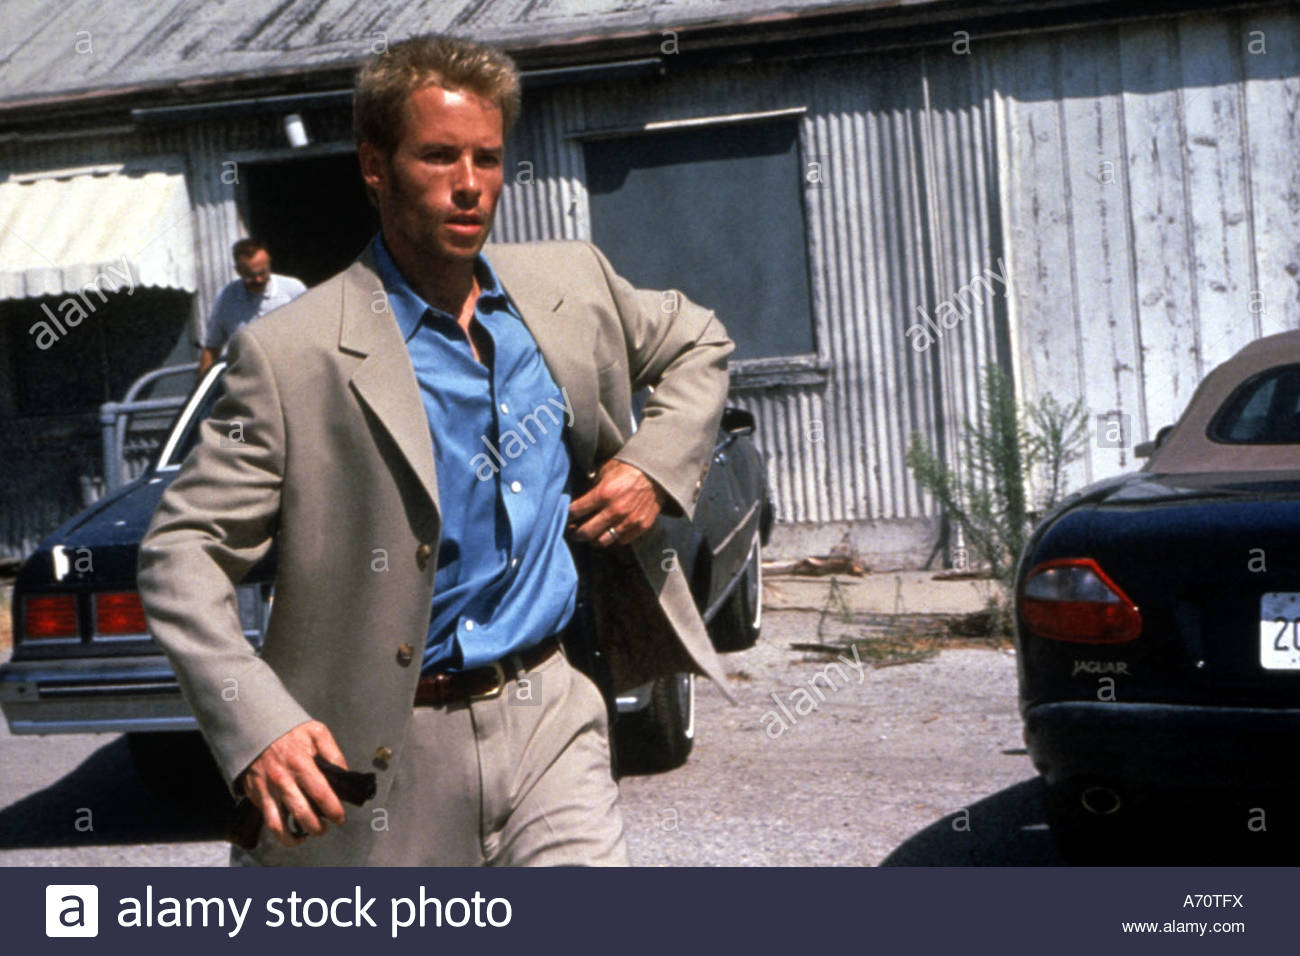 MEMENTO 2000 Pathe/Newmarket film with Guy Pearce - Stock Image